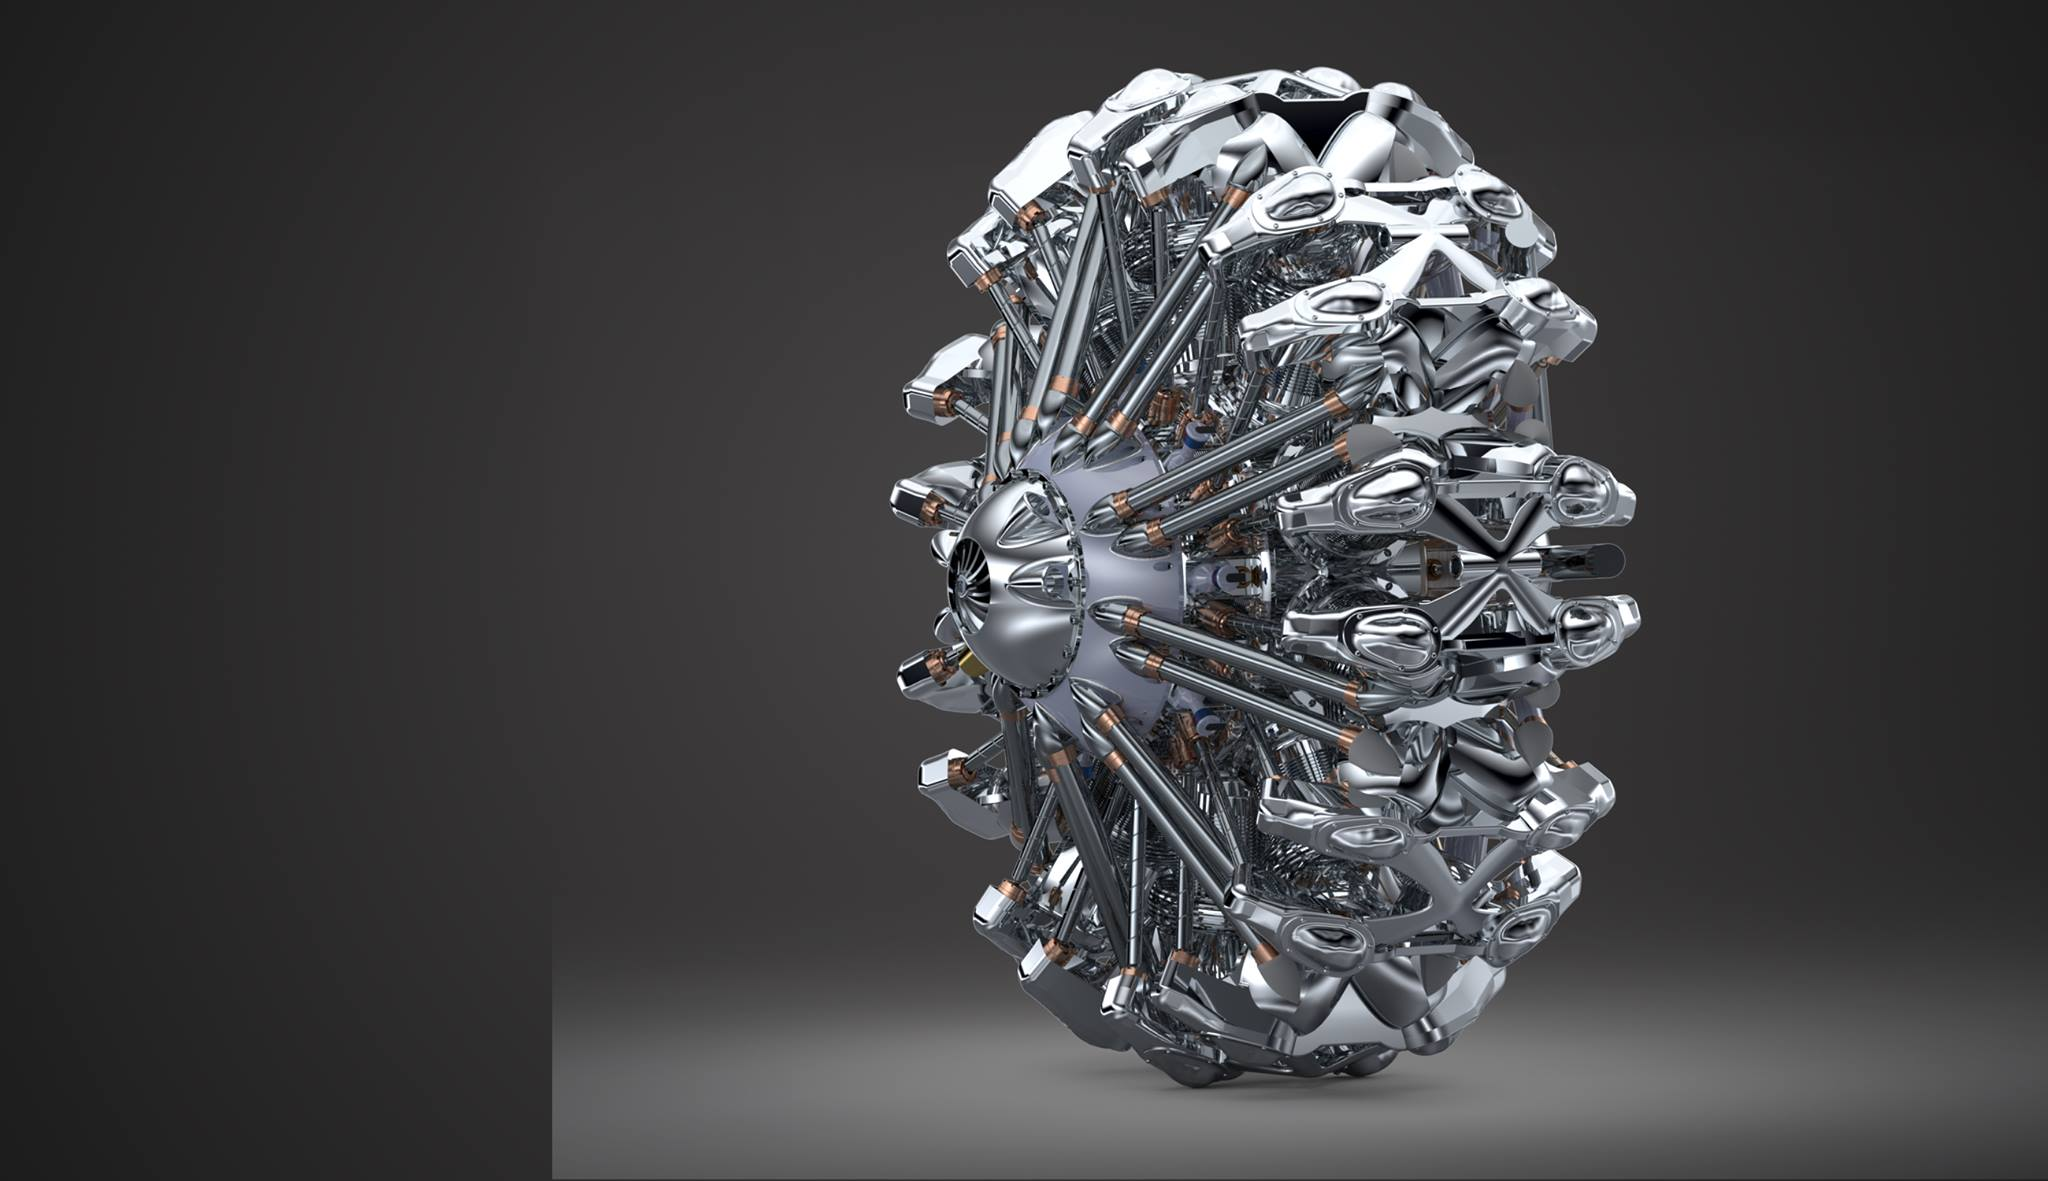 Radial Engine Innovation: Can the Radial Engine be the